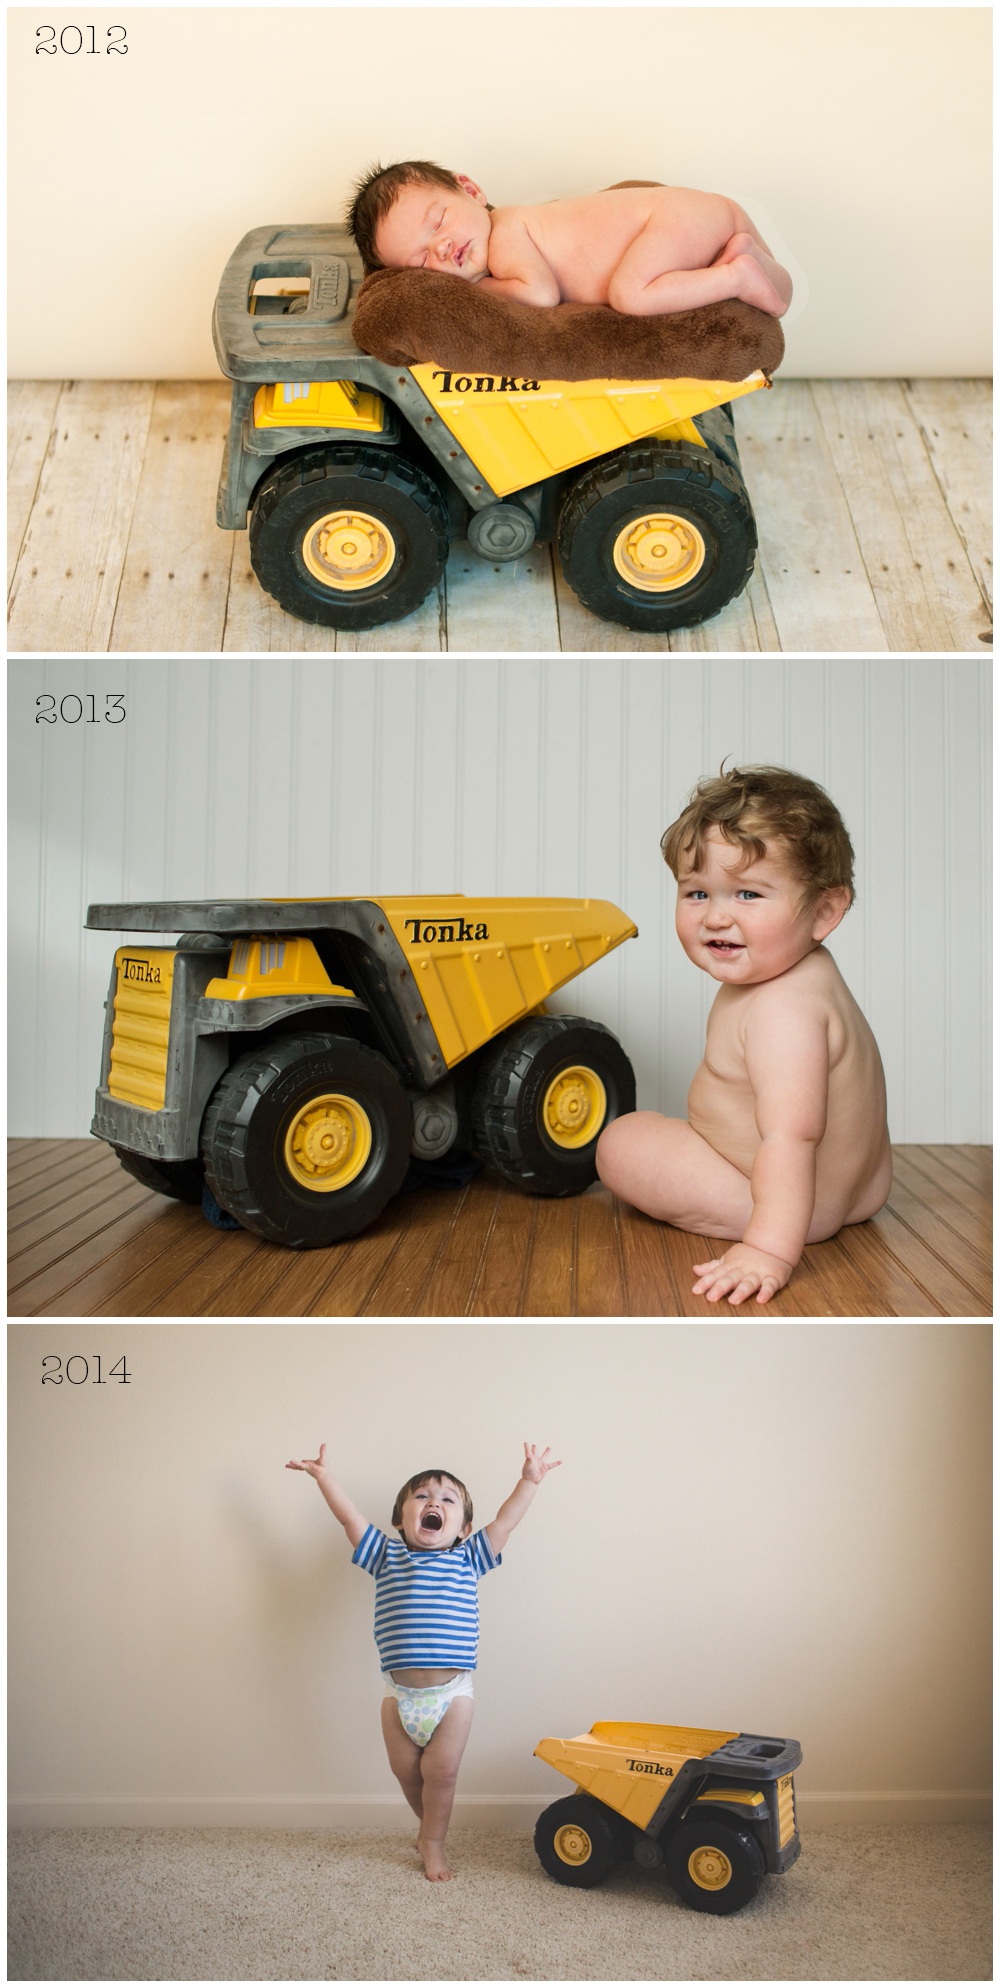 photography journey growth same prop every year